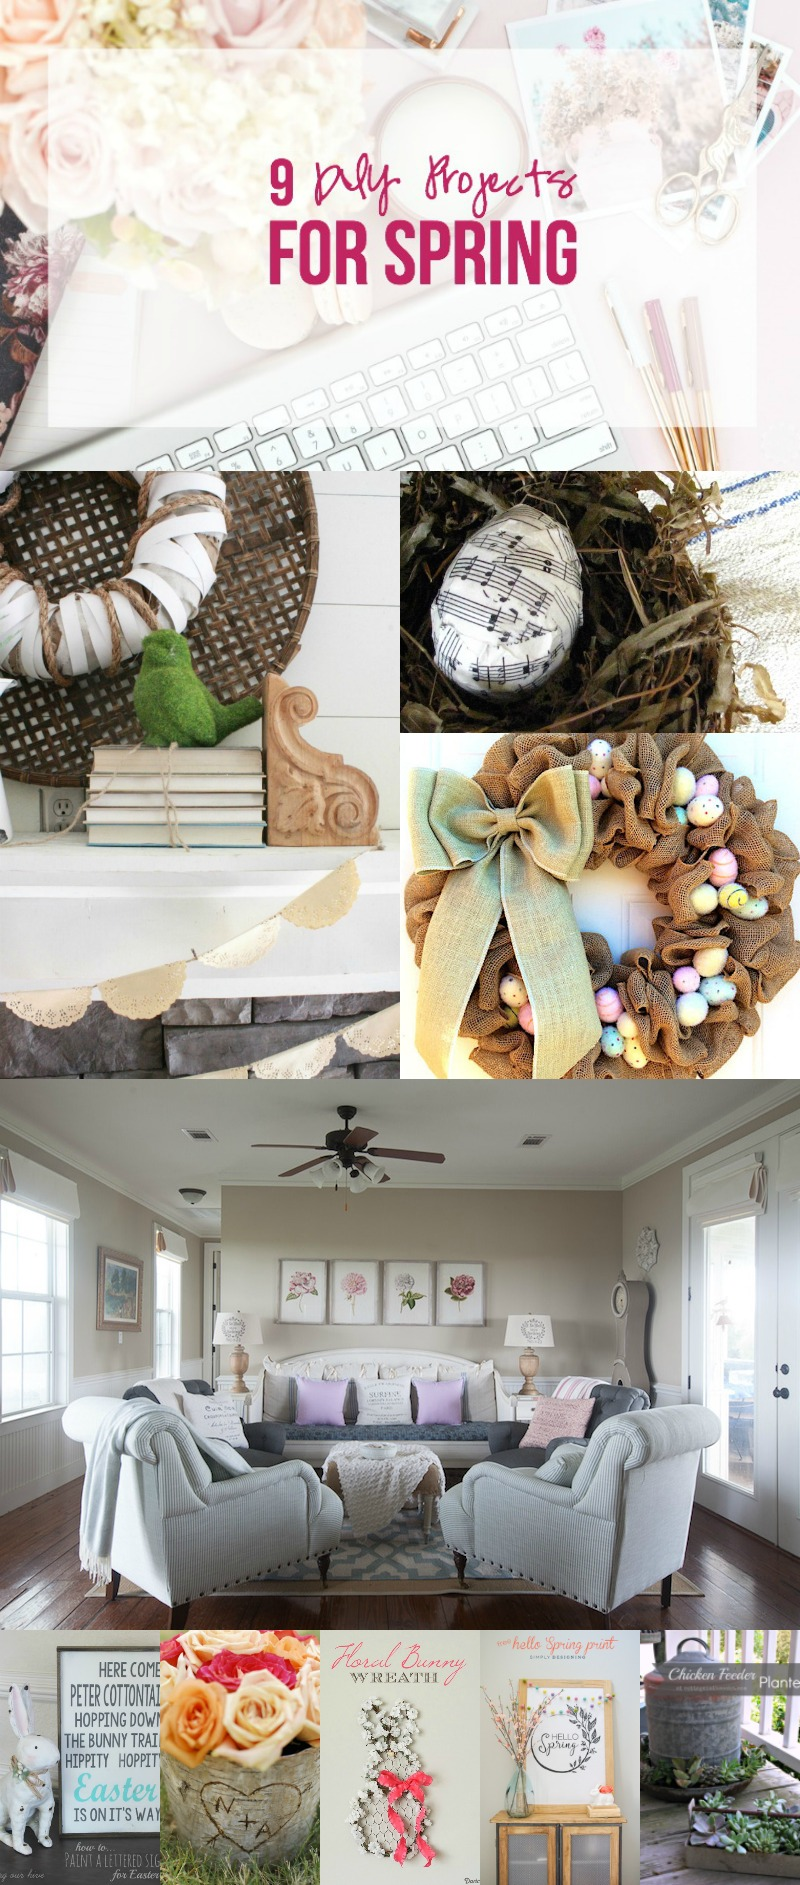 9 DIY Projects for Spring